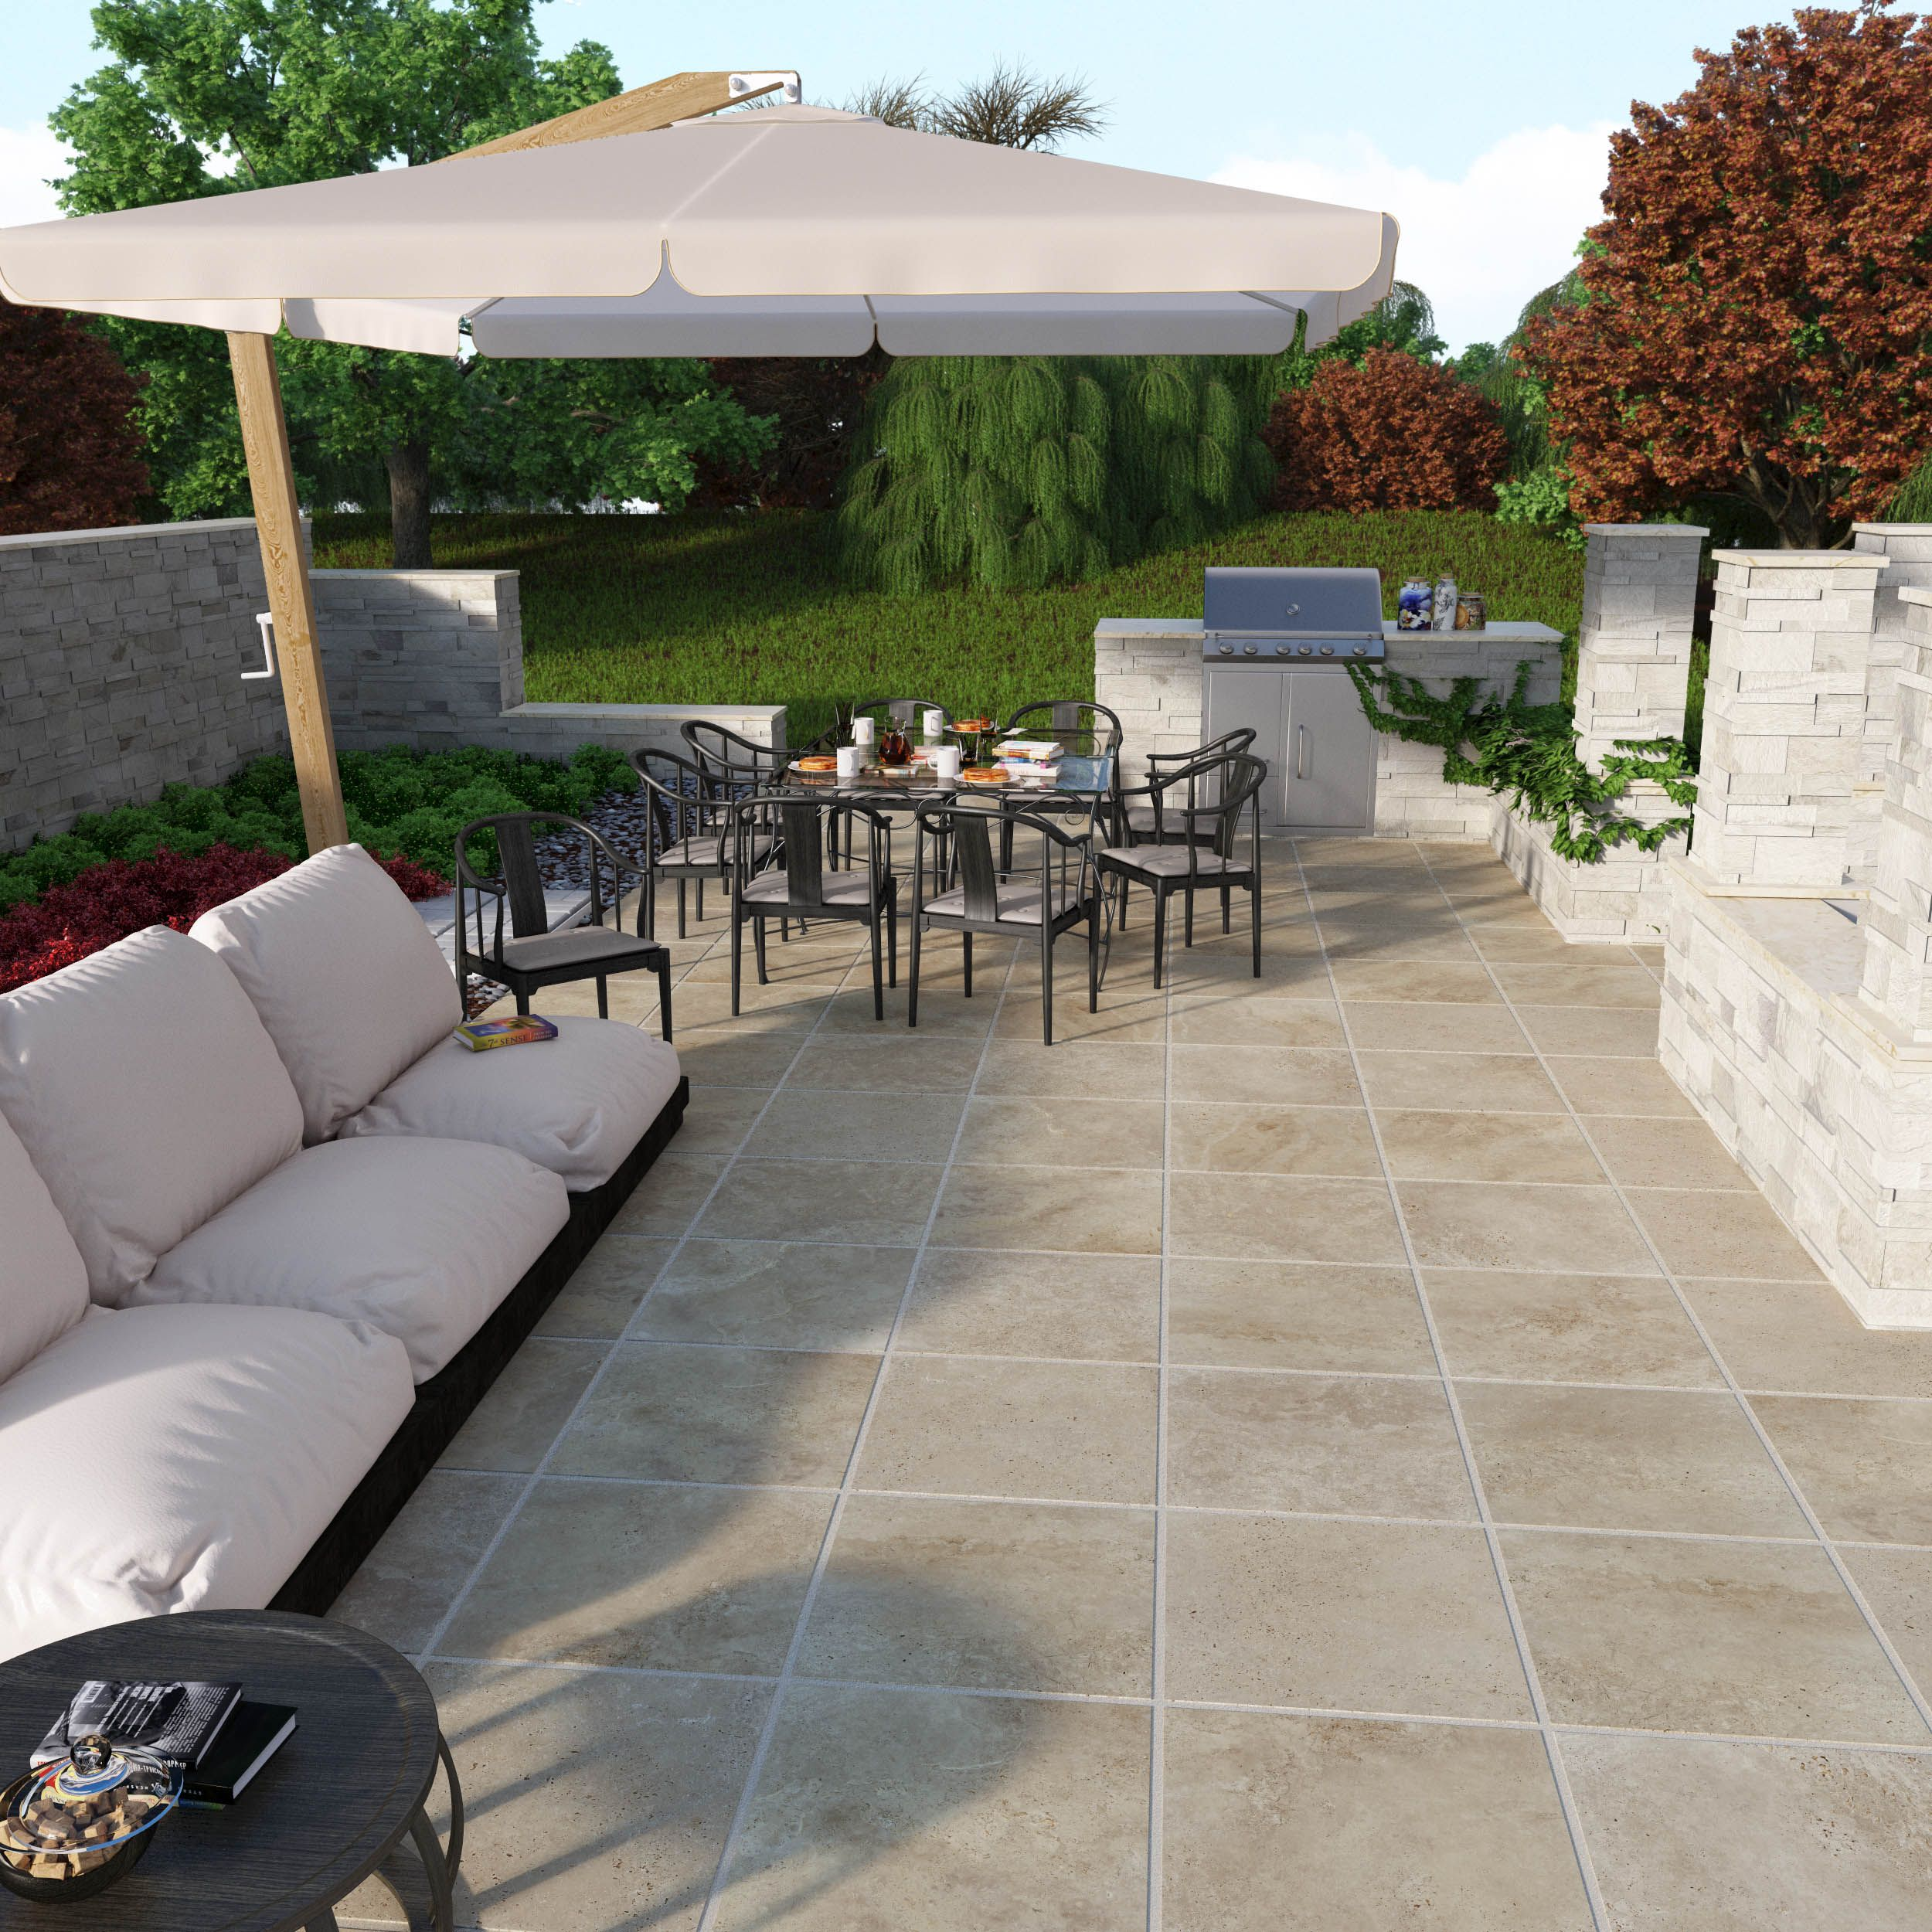 sandset porcelain patio stones easy to install for a stylish outdoor patio and living area. Black Bedroom Furniture Sets. Home Design Ideas